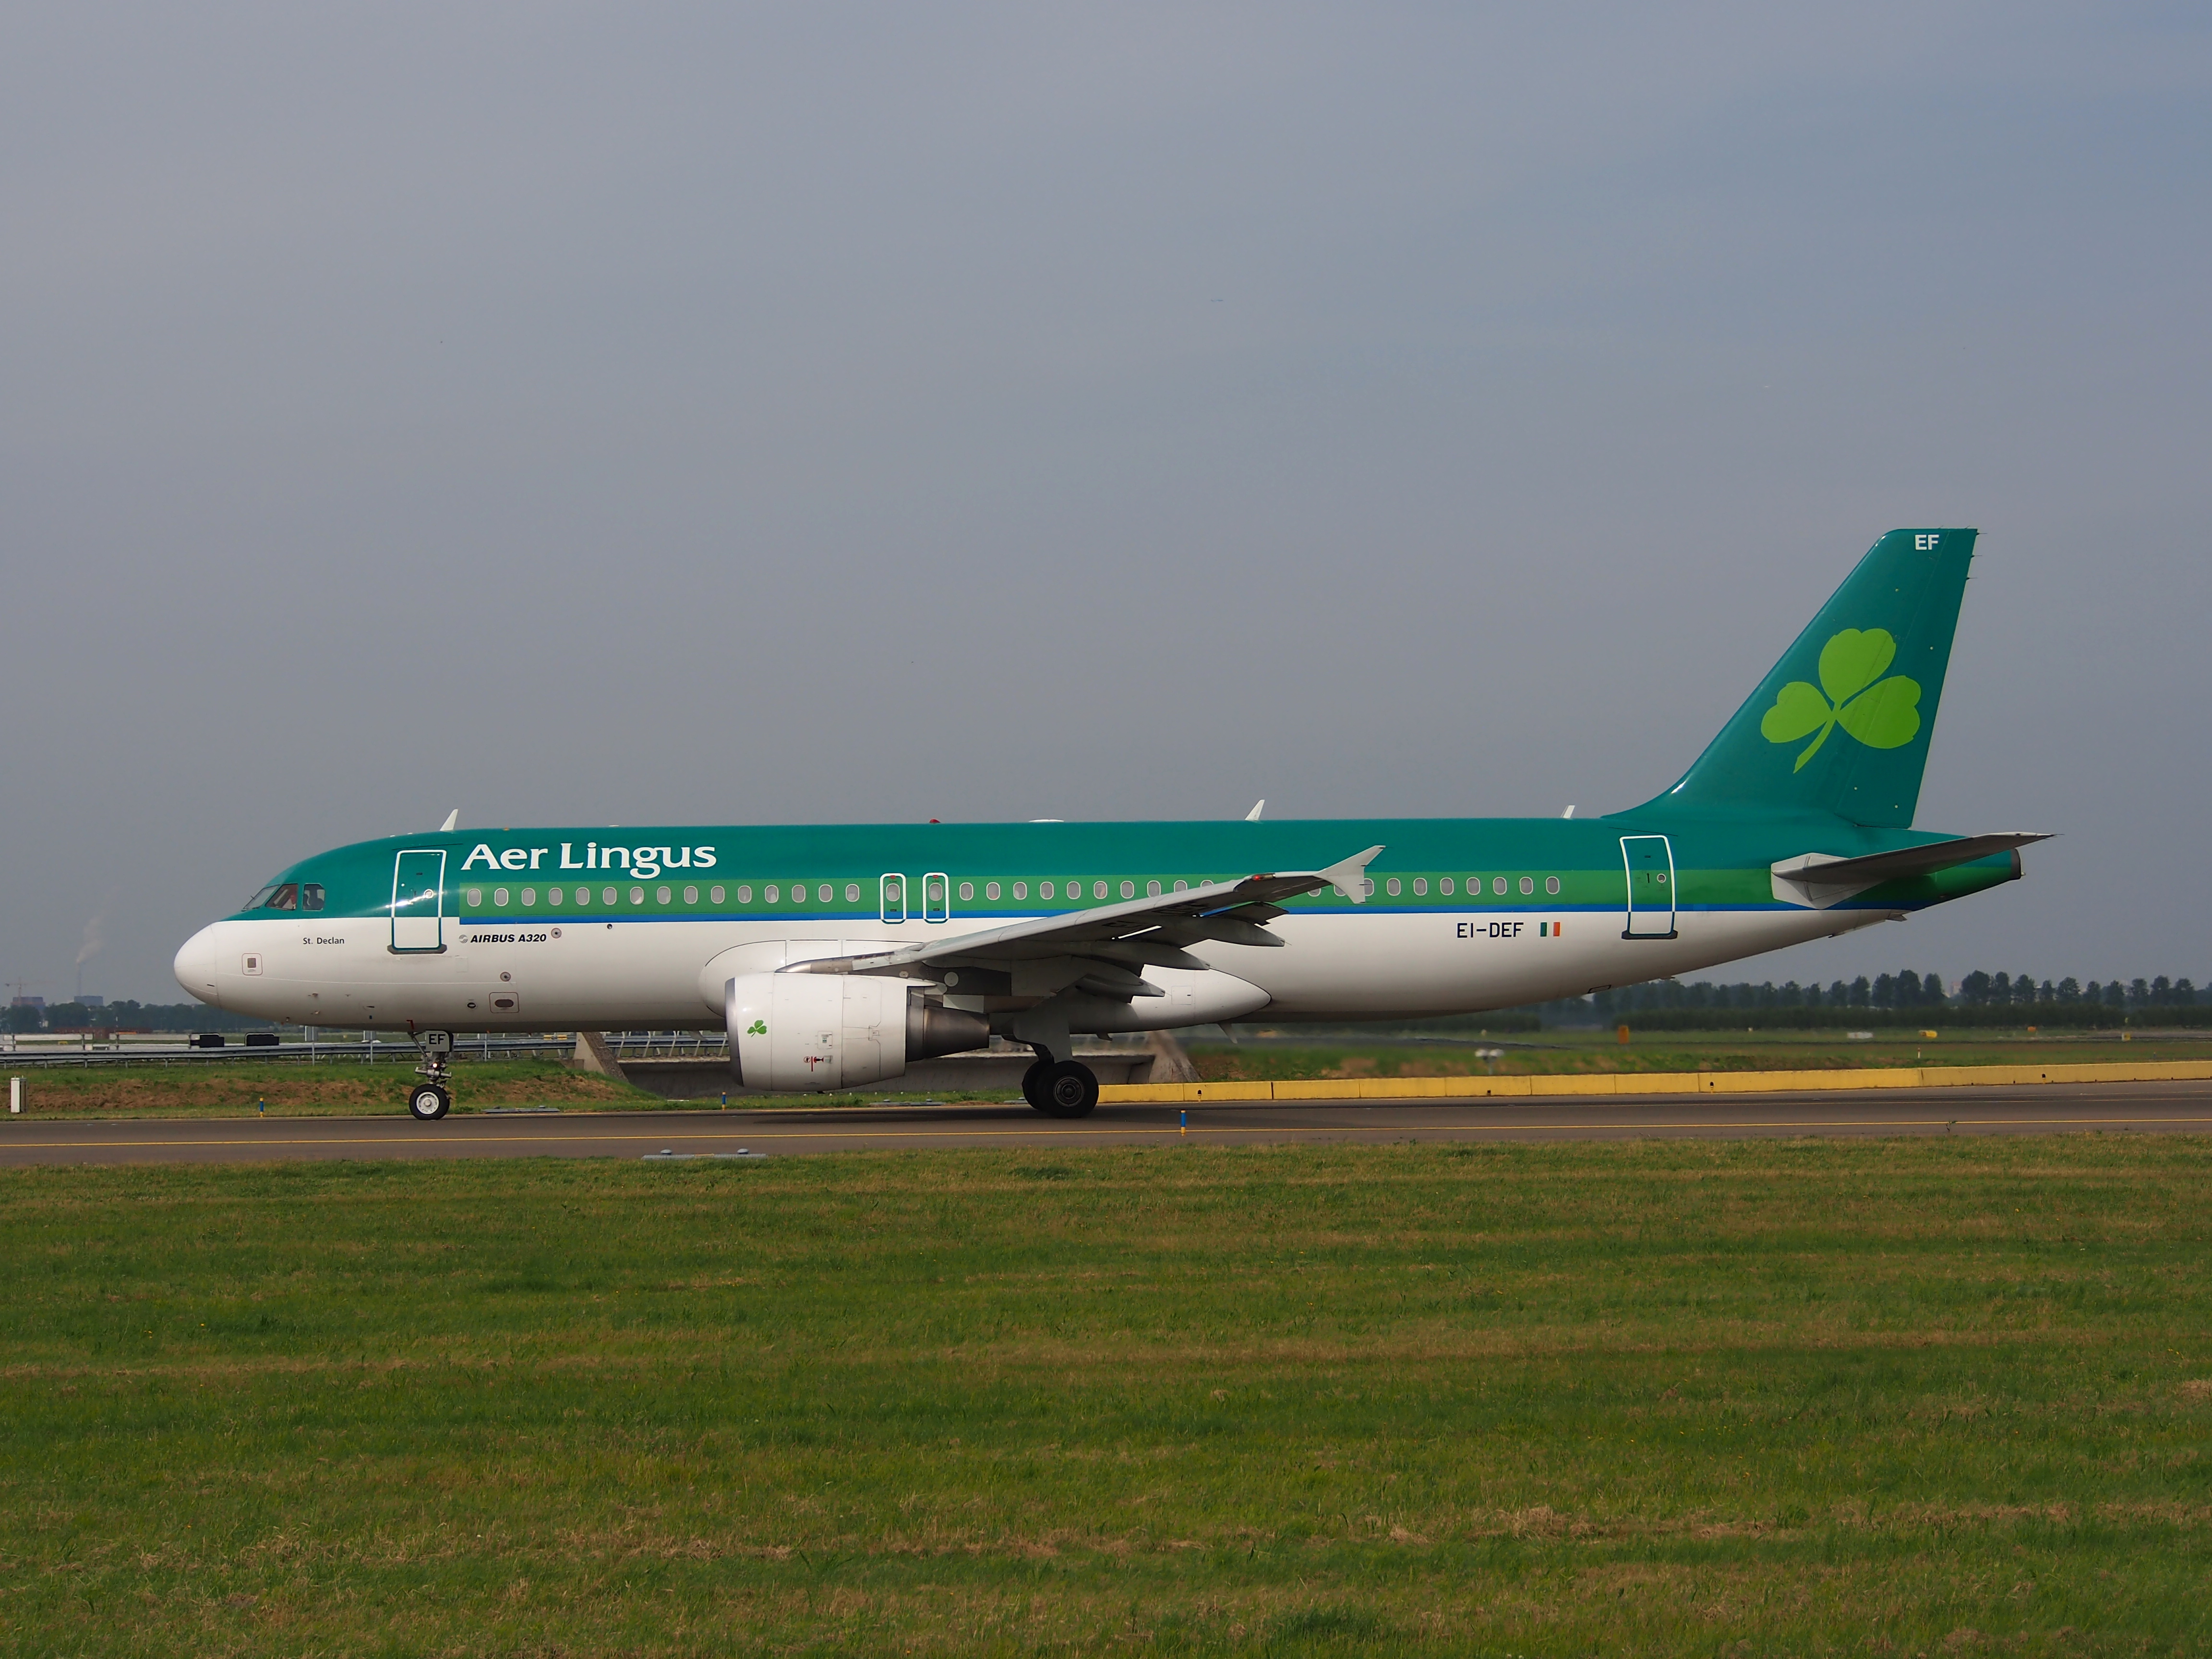 aer lingus history 2015-1-26 1936 state-owned aer lingus takes delivery of its first aircraft, registered ei-abi, on may 26, 1936 and named it iolar (eagle) this was aer lingus's only aircraft for two years 1946 paris added to the network, becoming the first continental european city to be served by aer lingus.